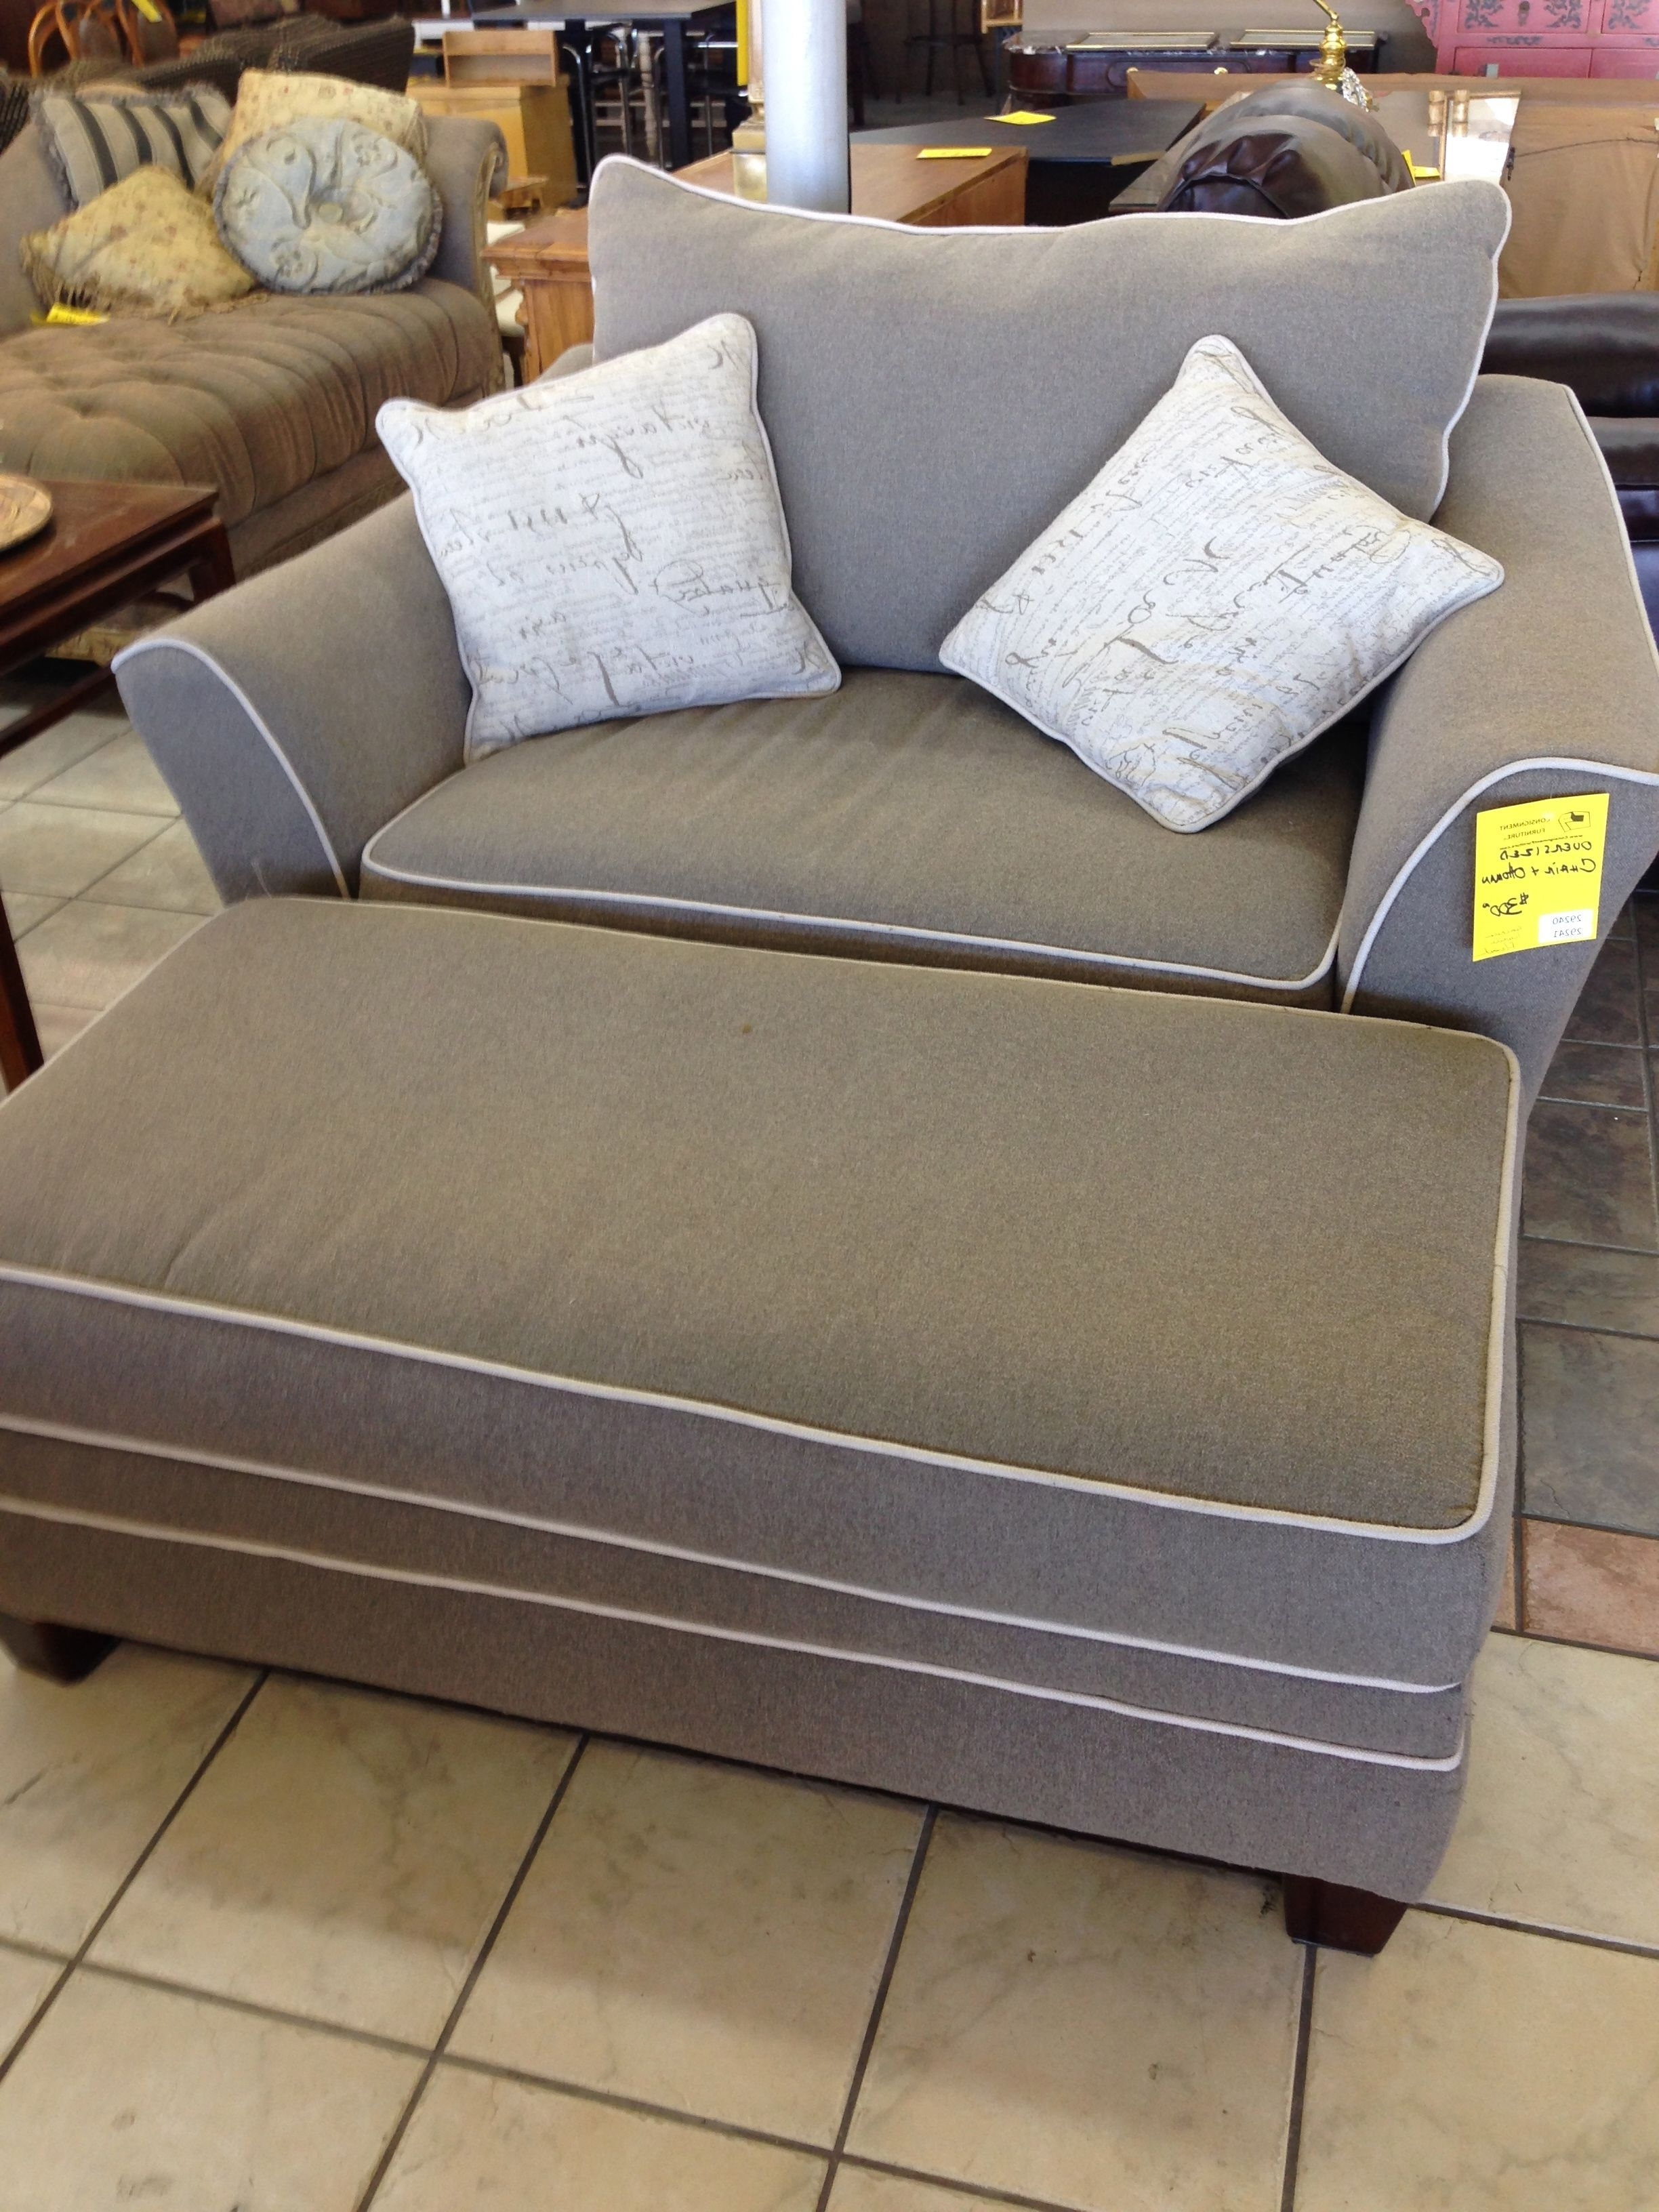 Big Sofa Chairs In Most Current Stylish Grey Fabric Oversized Chairs With Rectangle Ottoman In (View 3 of 15)